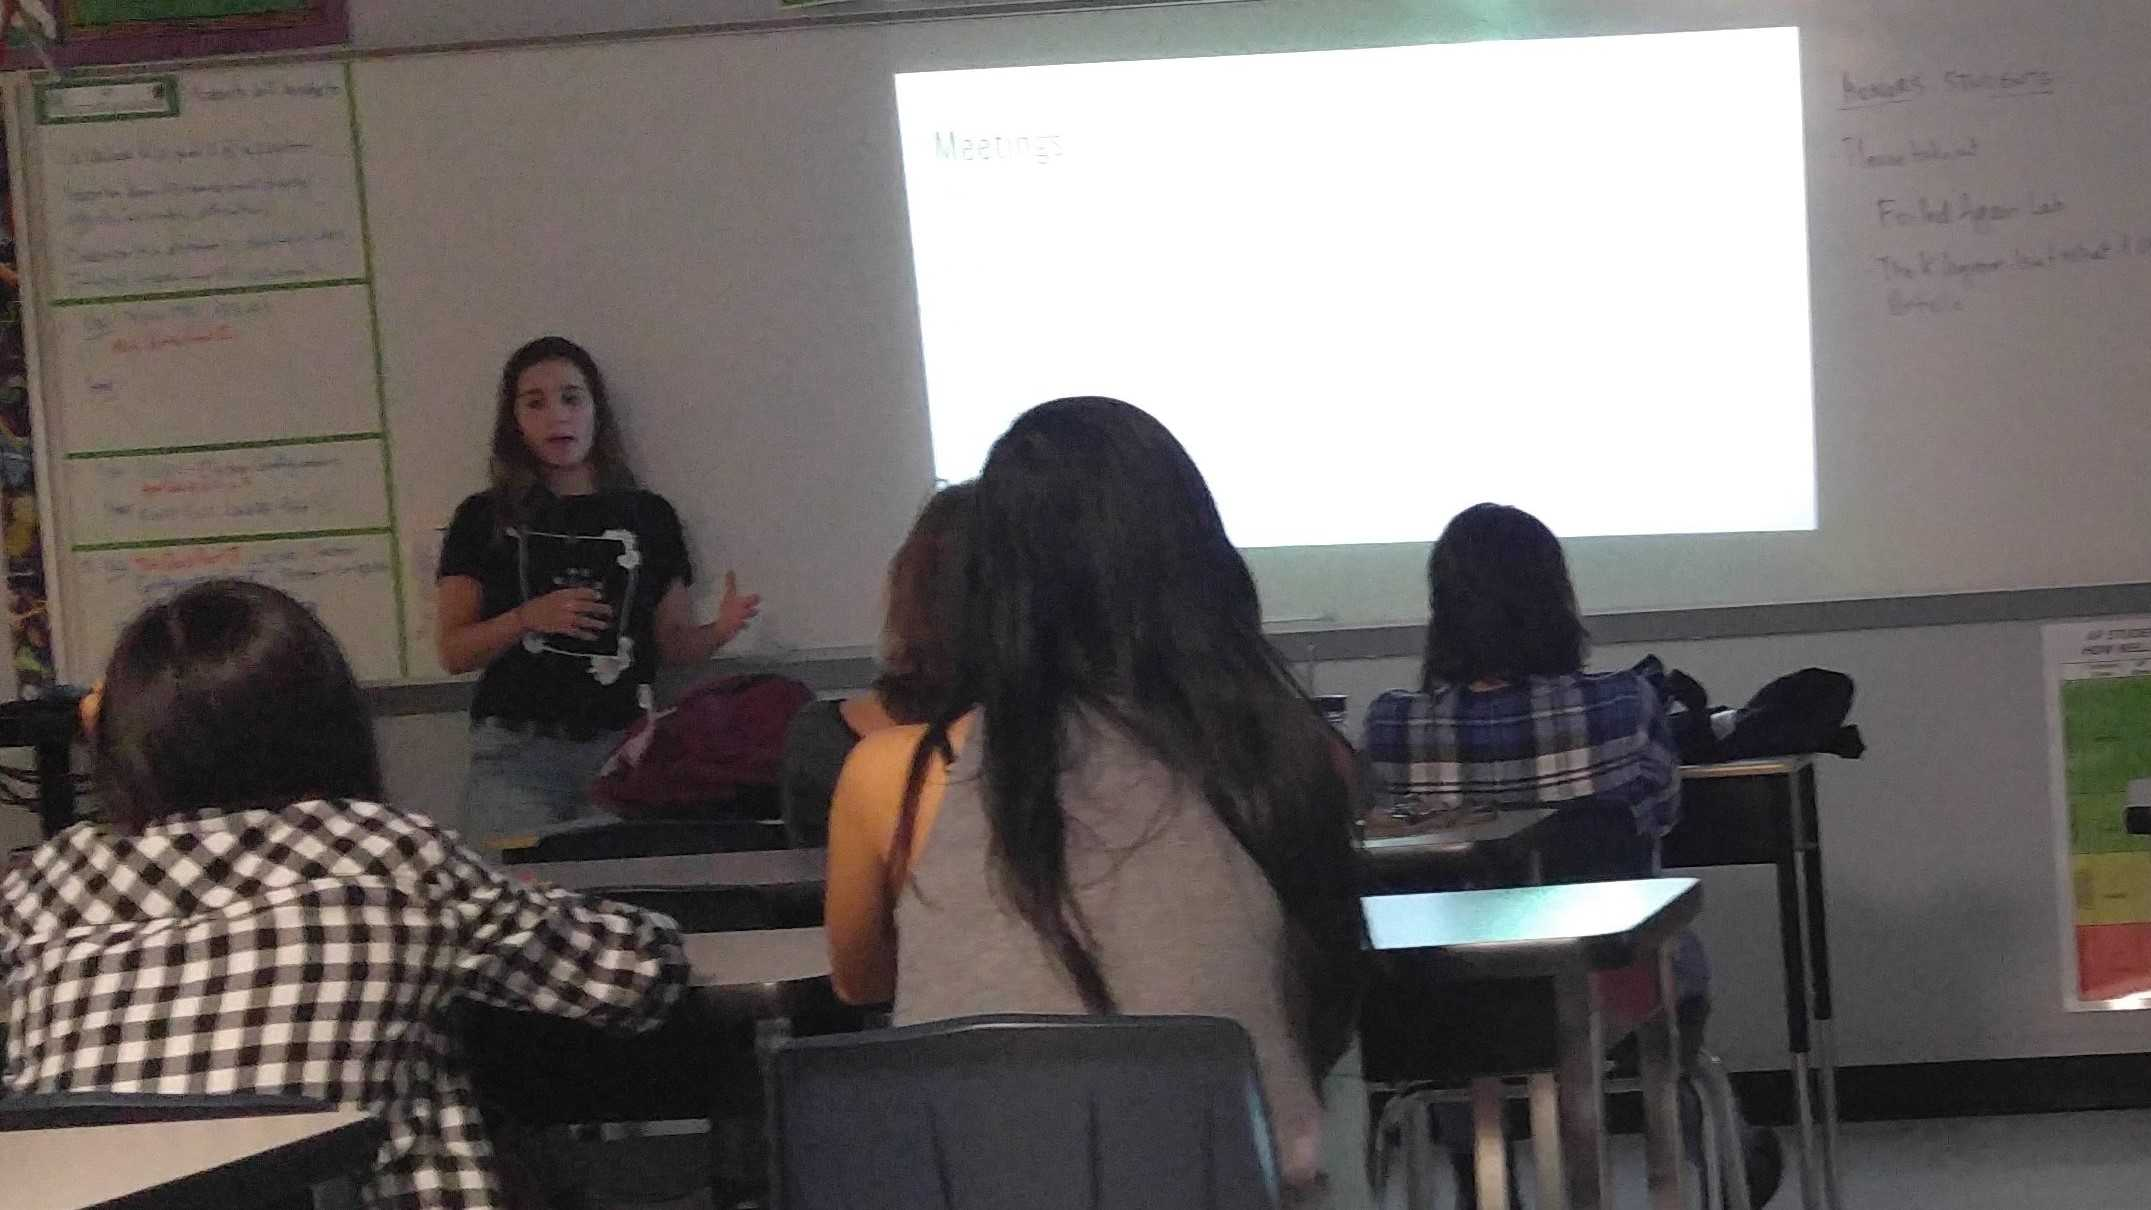 The co-president of the girl up club explains when the club's future meetings will take place.